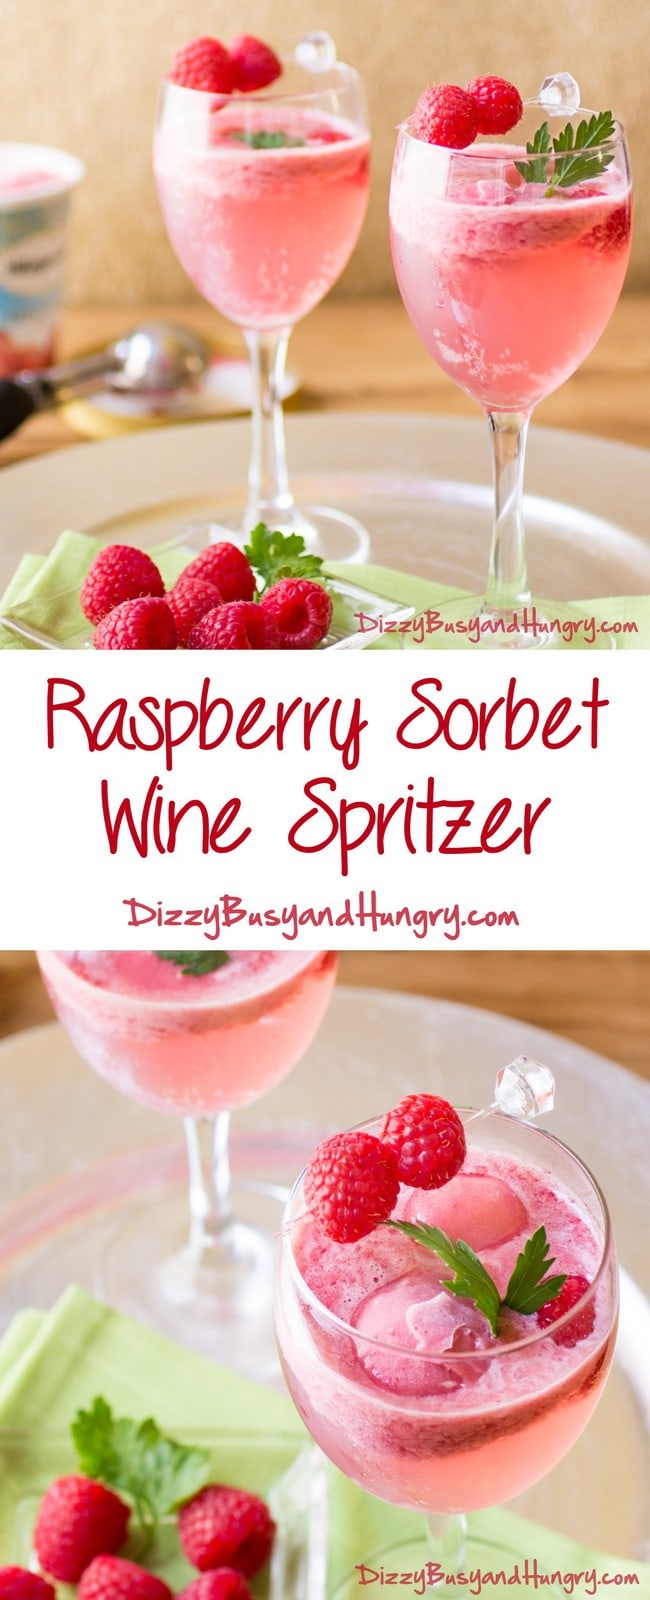 Raspberry Sorbet Wine Spritzer | DizzyBusyandHungry.com - So pretty, refreshing, and delicious! Perfect to serve for a summer evening gathering!